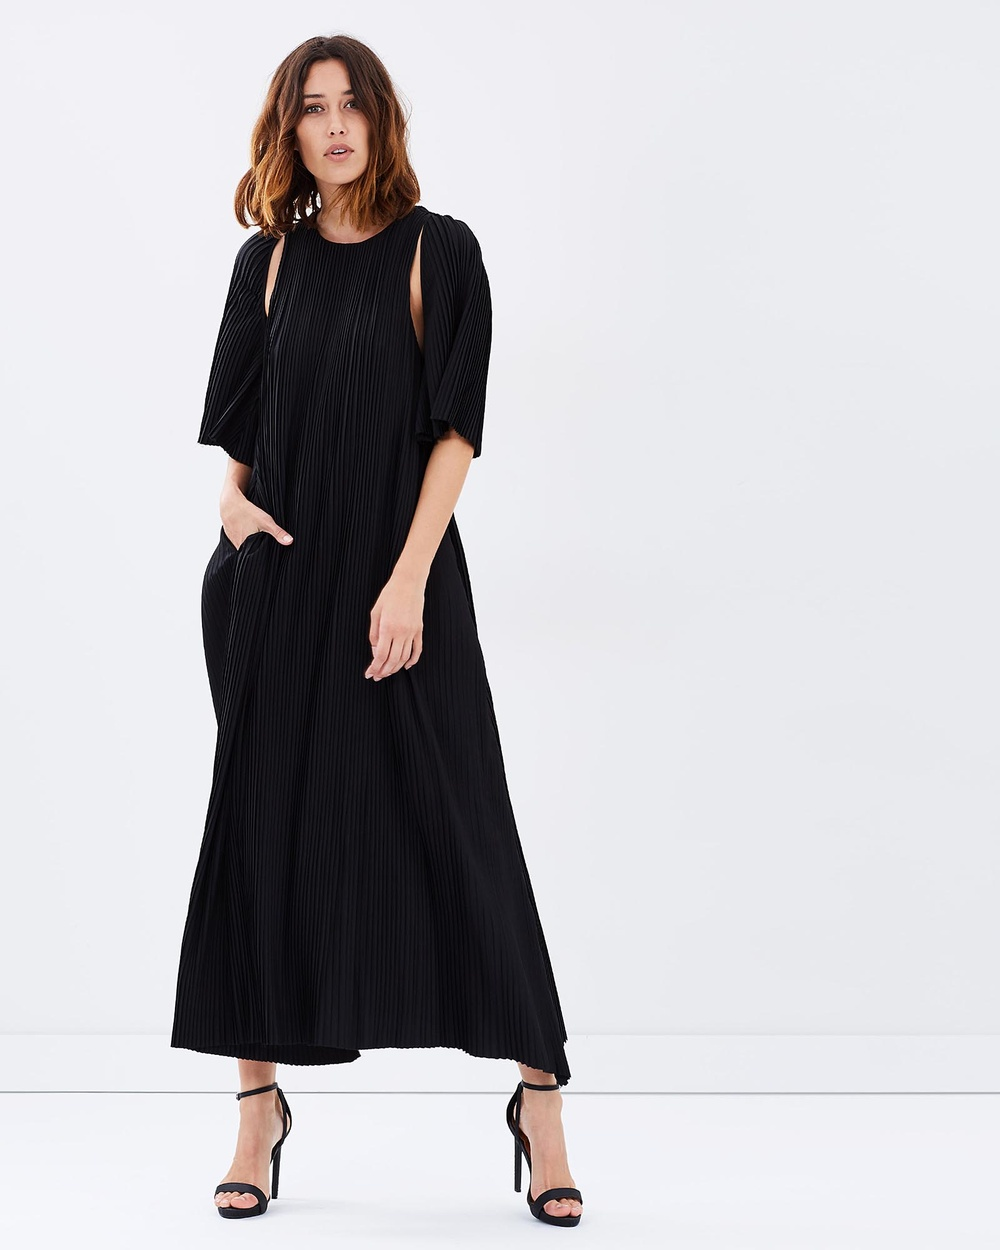 Friend of Audrey Black Pleated Cut-Out Maxi Dress